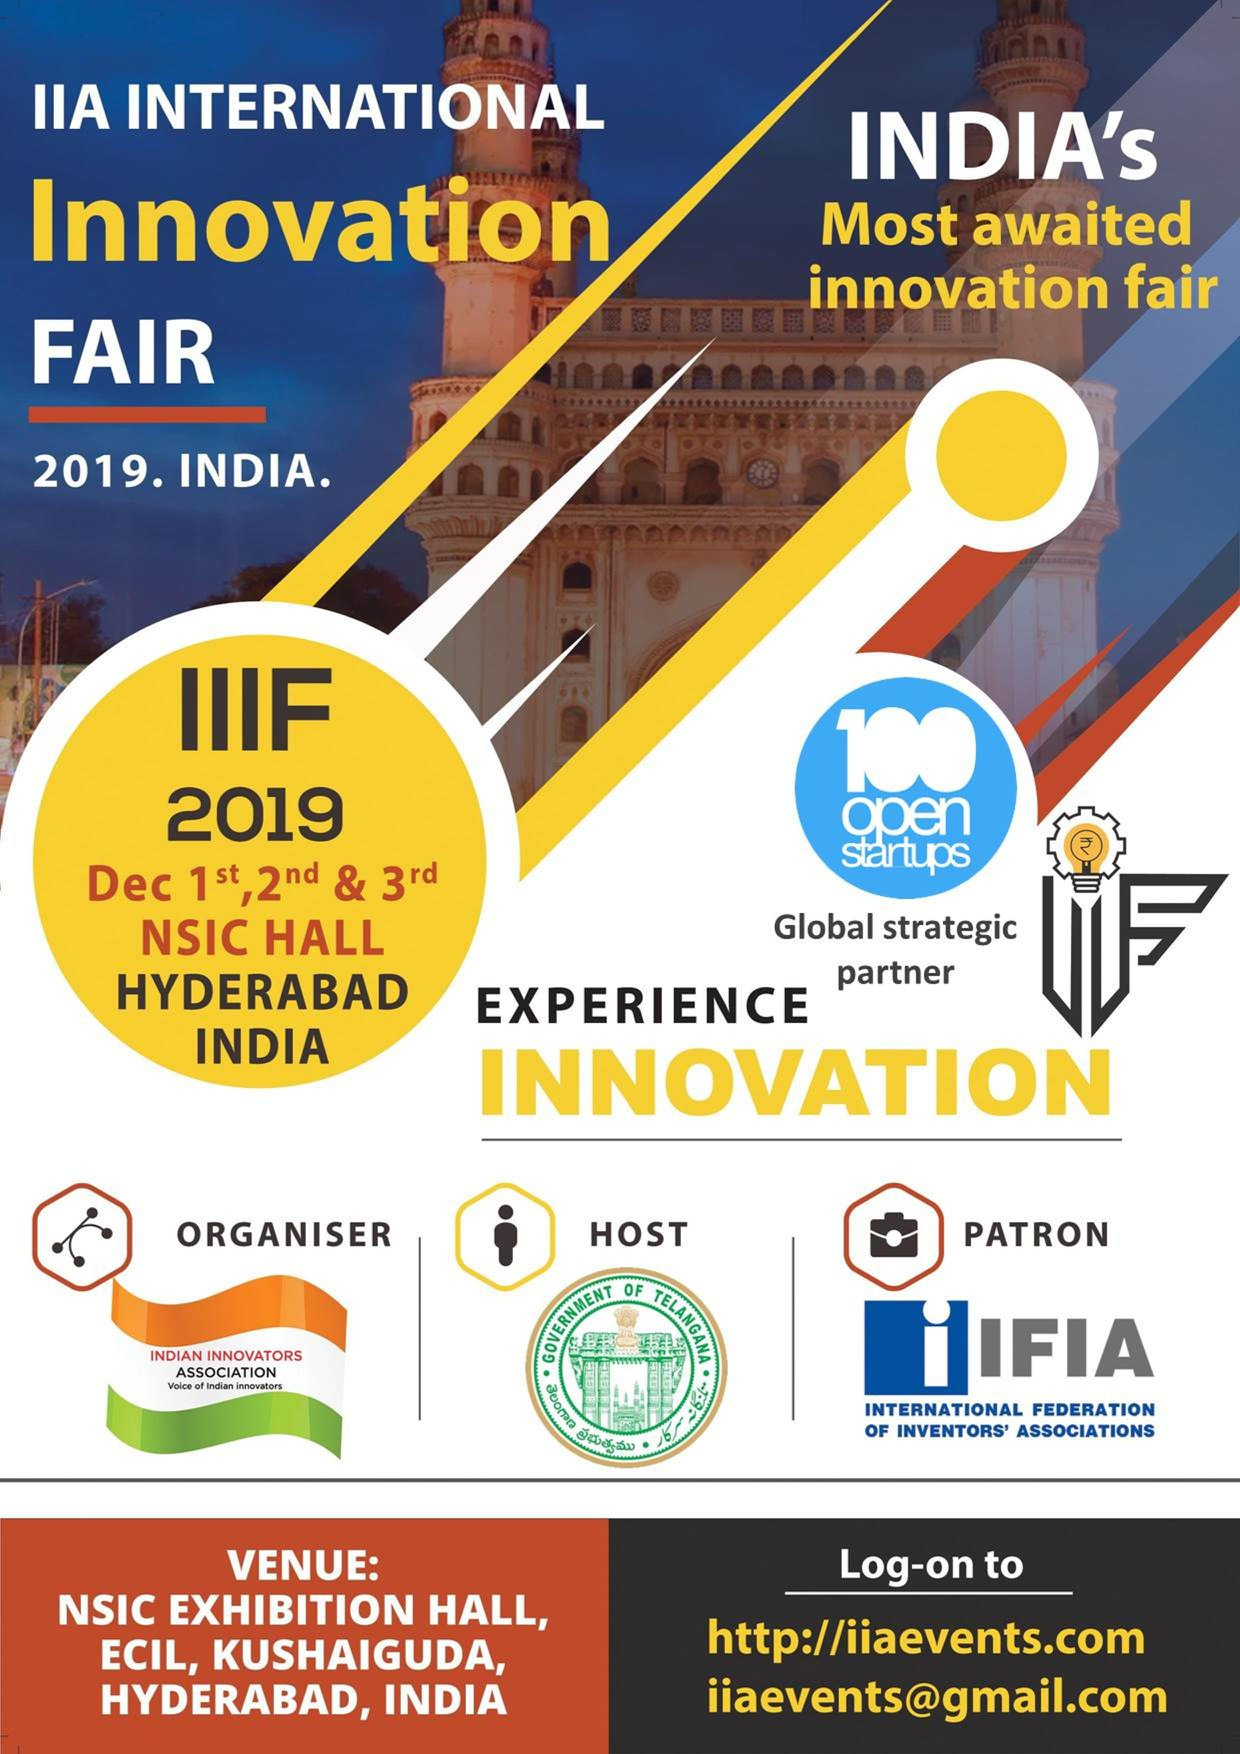 IIA International Innovation Fair (IIIF2019)